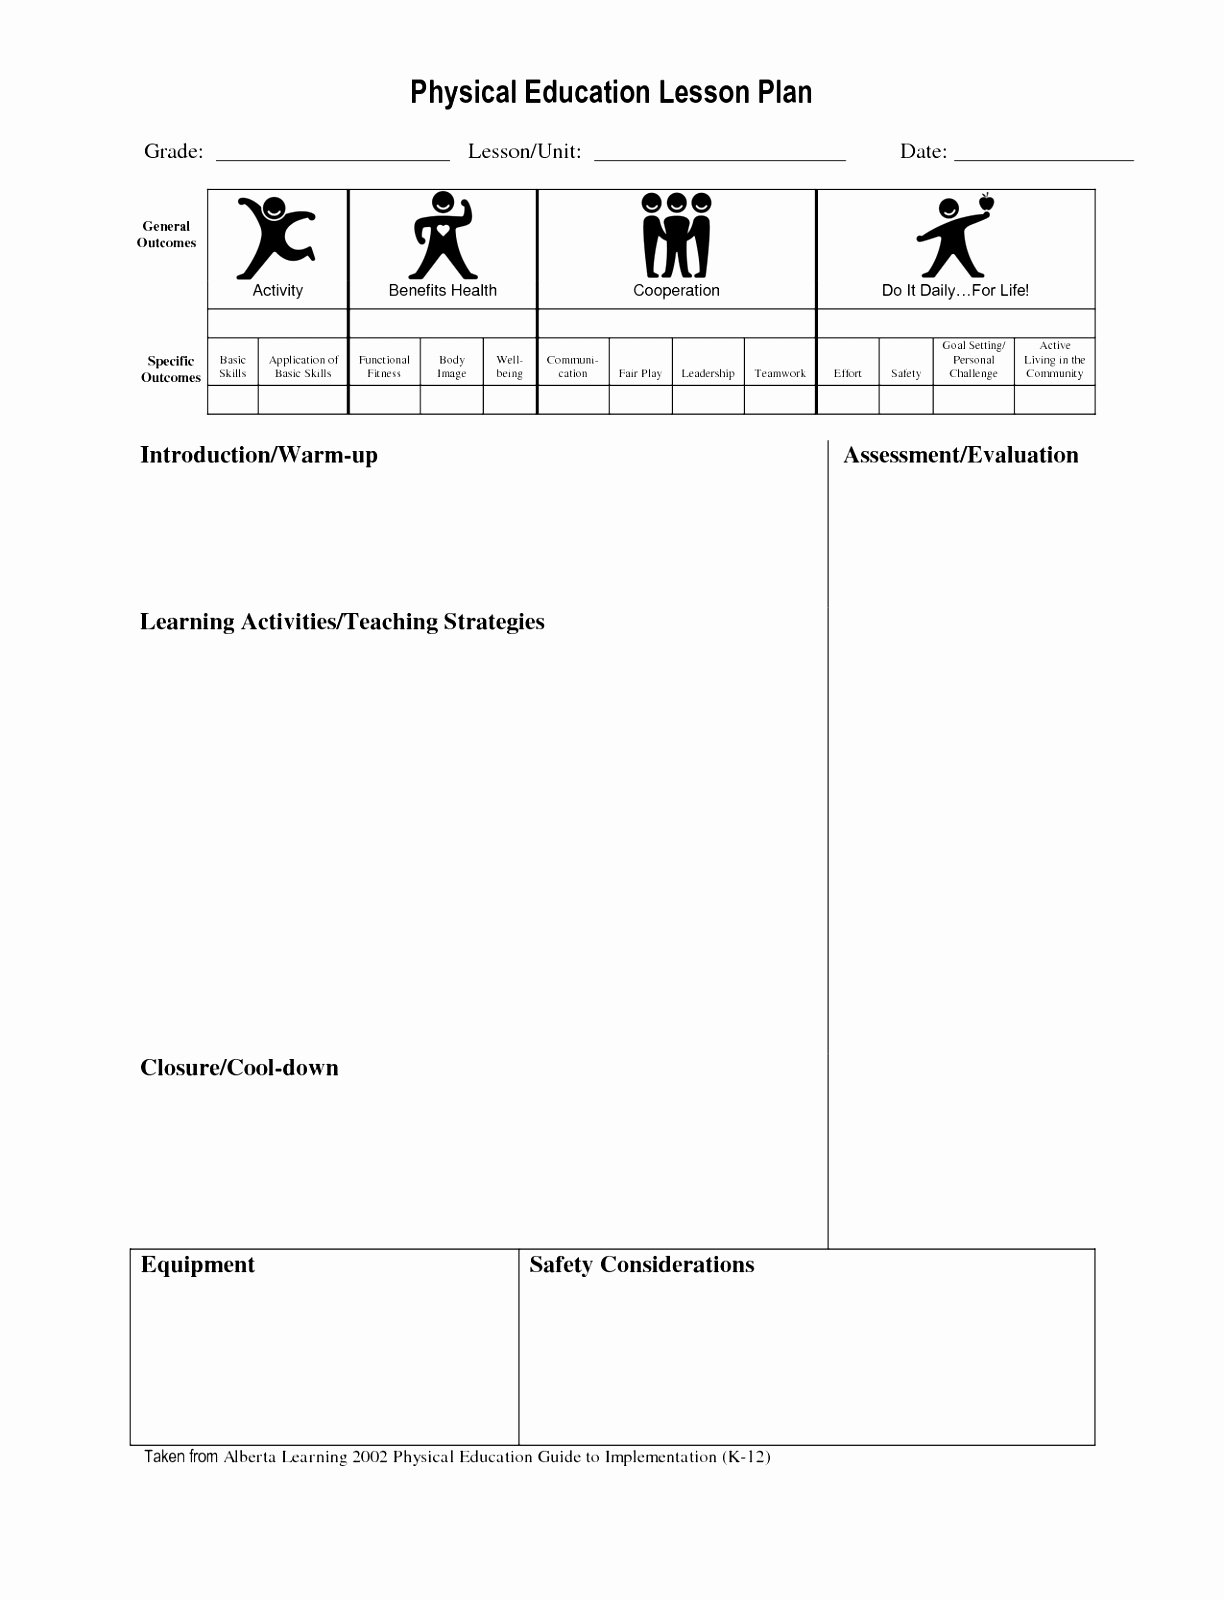 Phys Ed Lesson Plan Template Unique 10 Lesson Plan Template for Physical Education Eipot